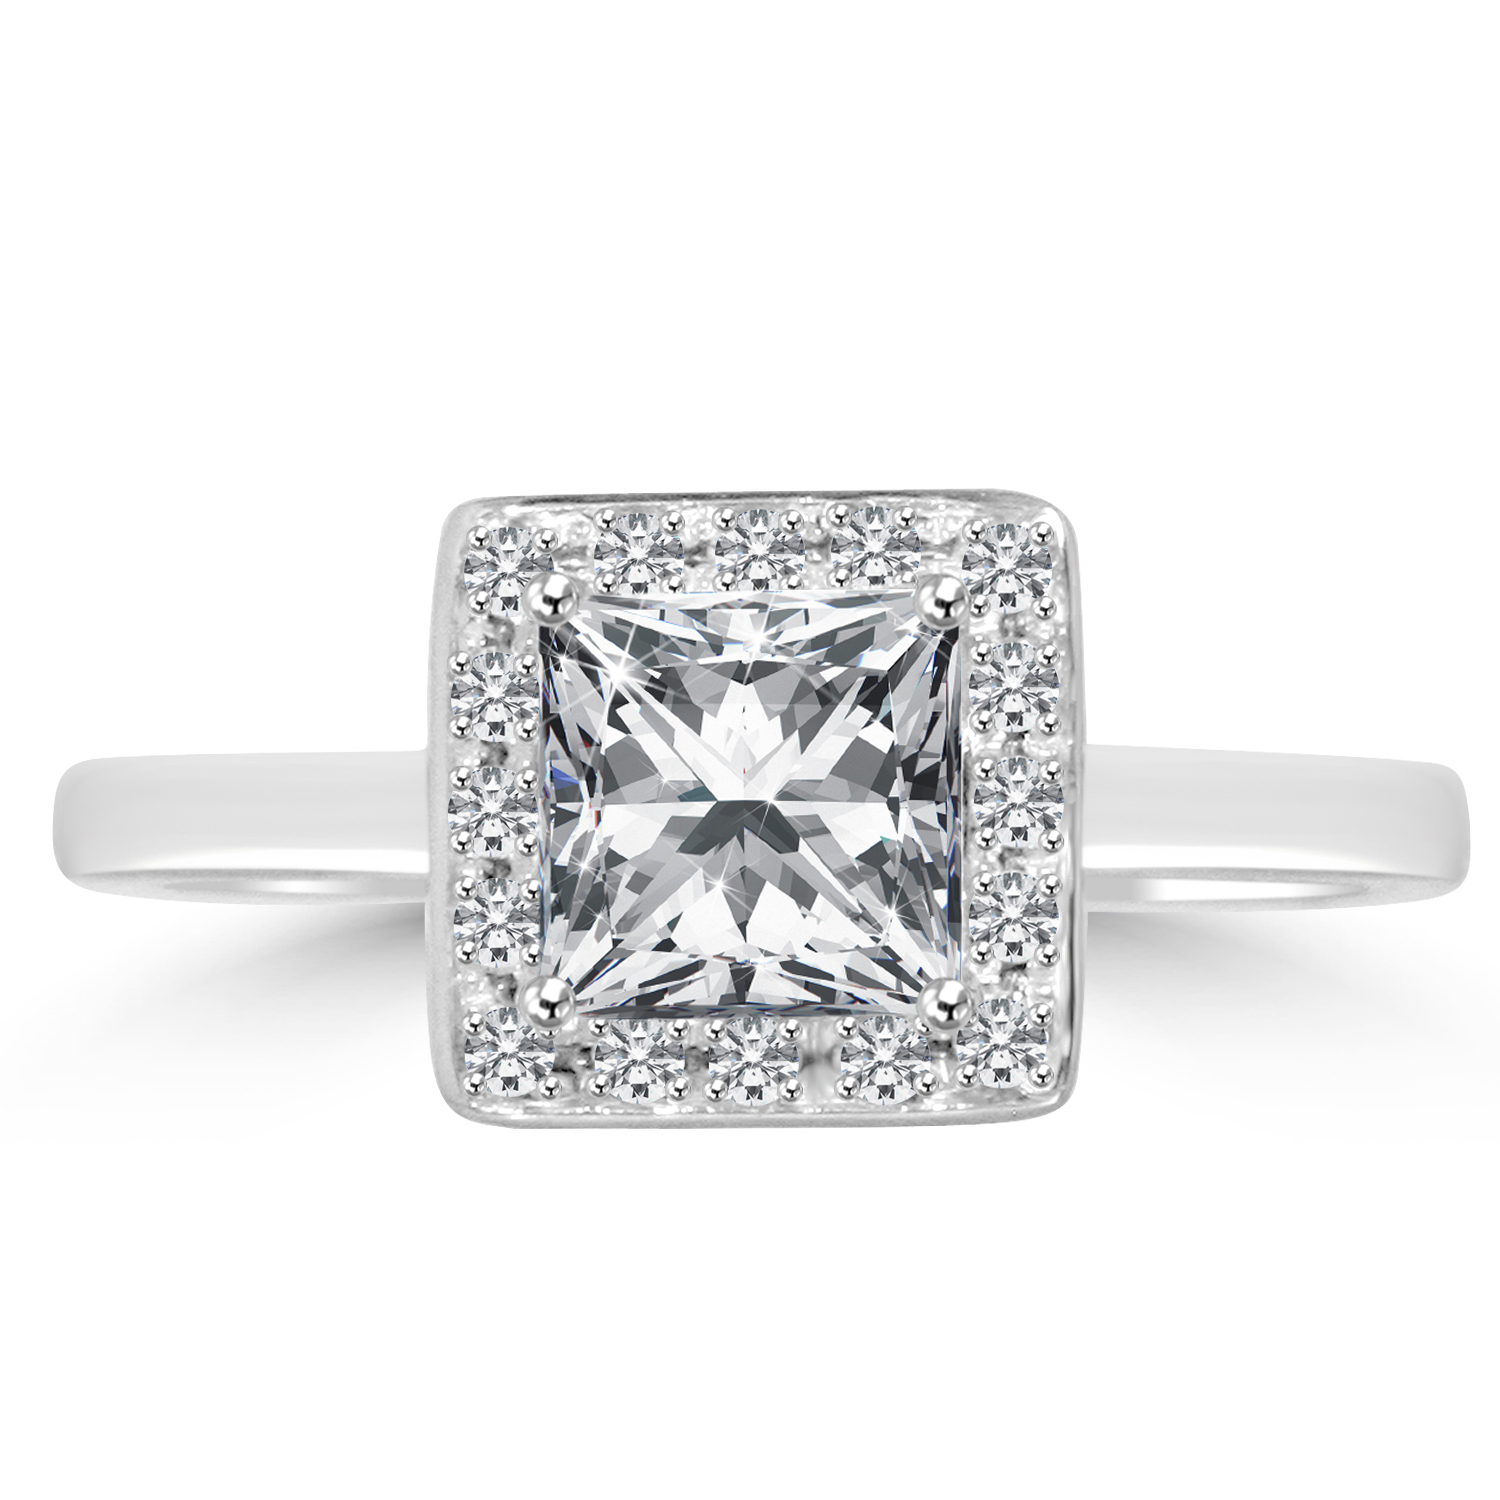 1 15 ct princess cut engagement ring vvs2 f 14k